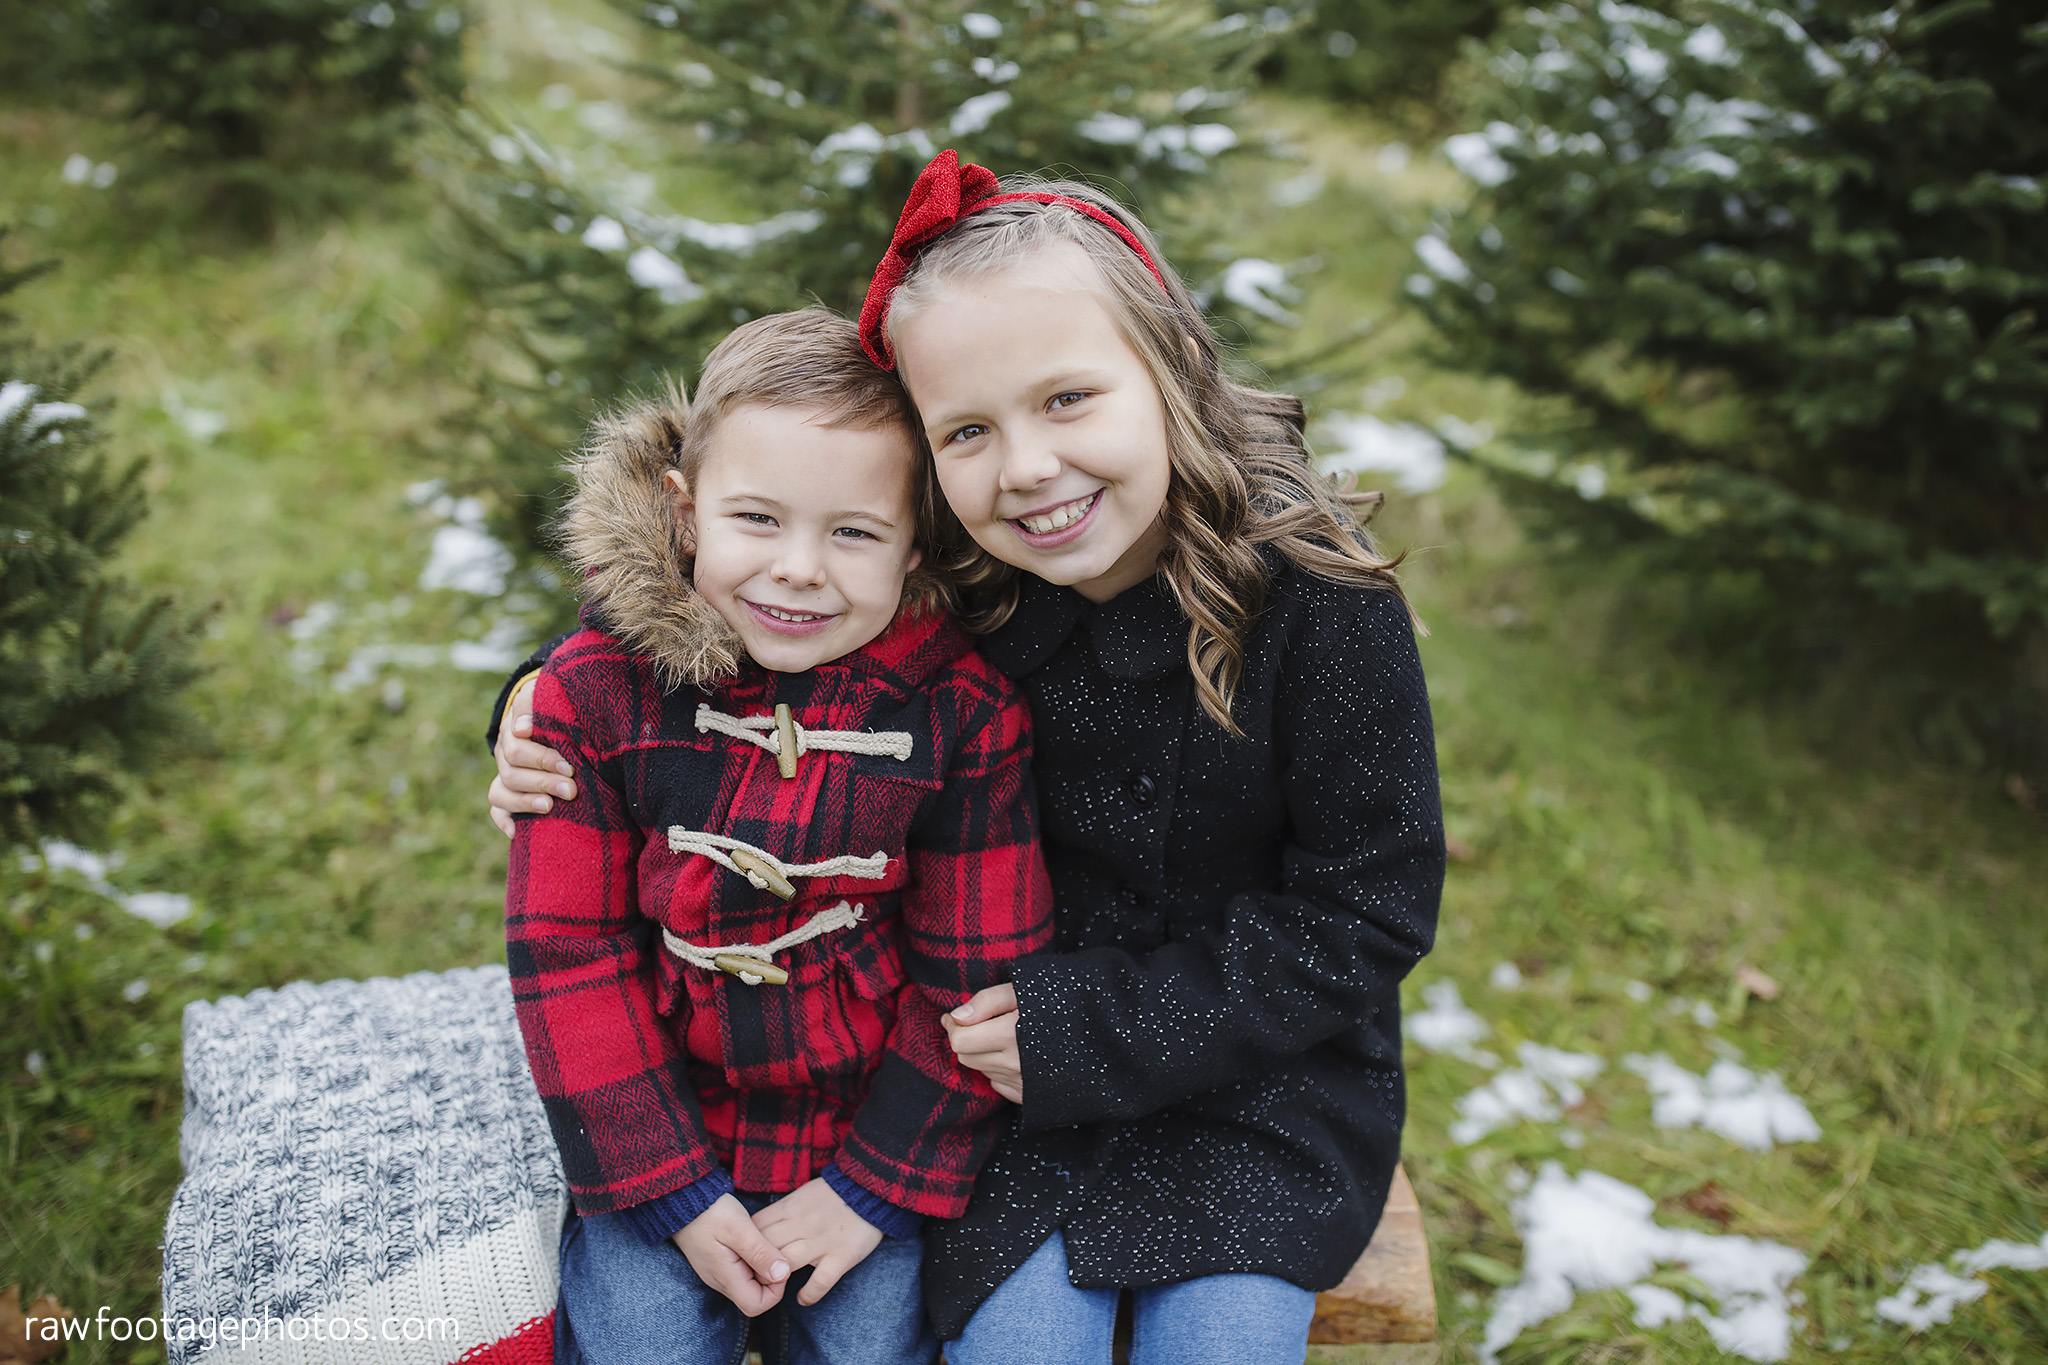 london_ontario_family_photographer-raw_footage_photography-tree_farm_minis-christmas_sessions-winter0025.jpg